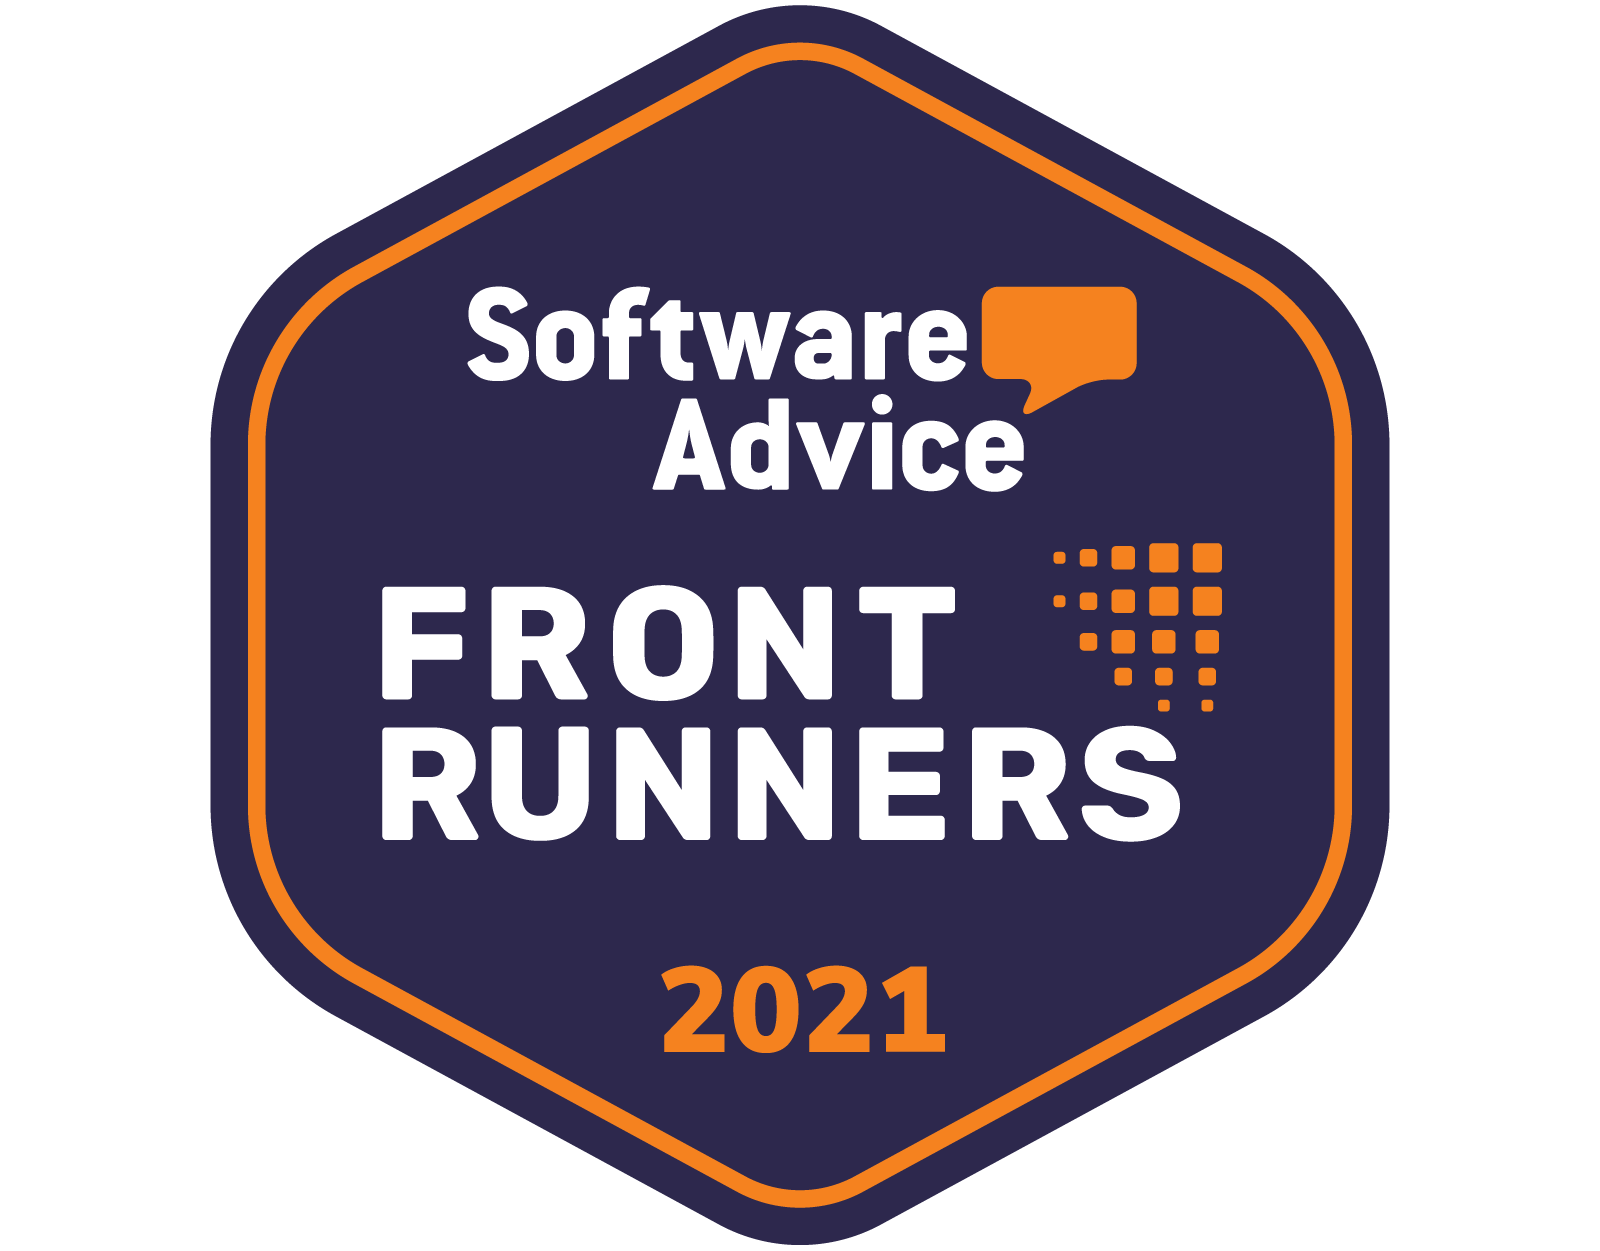 Software Advice Frontrunners for Budgeting Jan-21